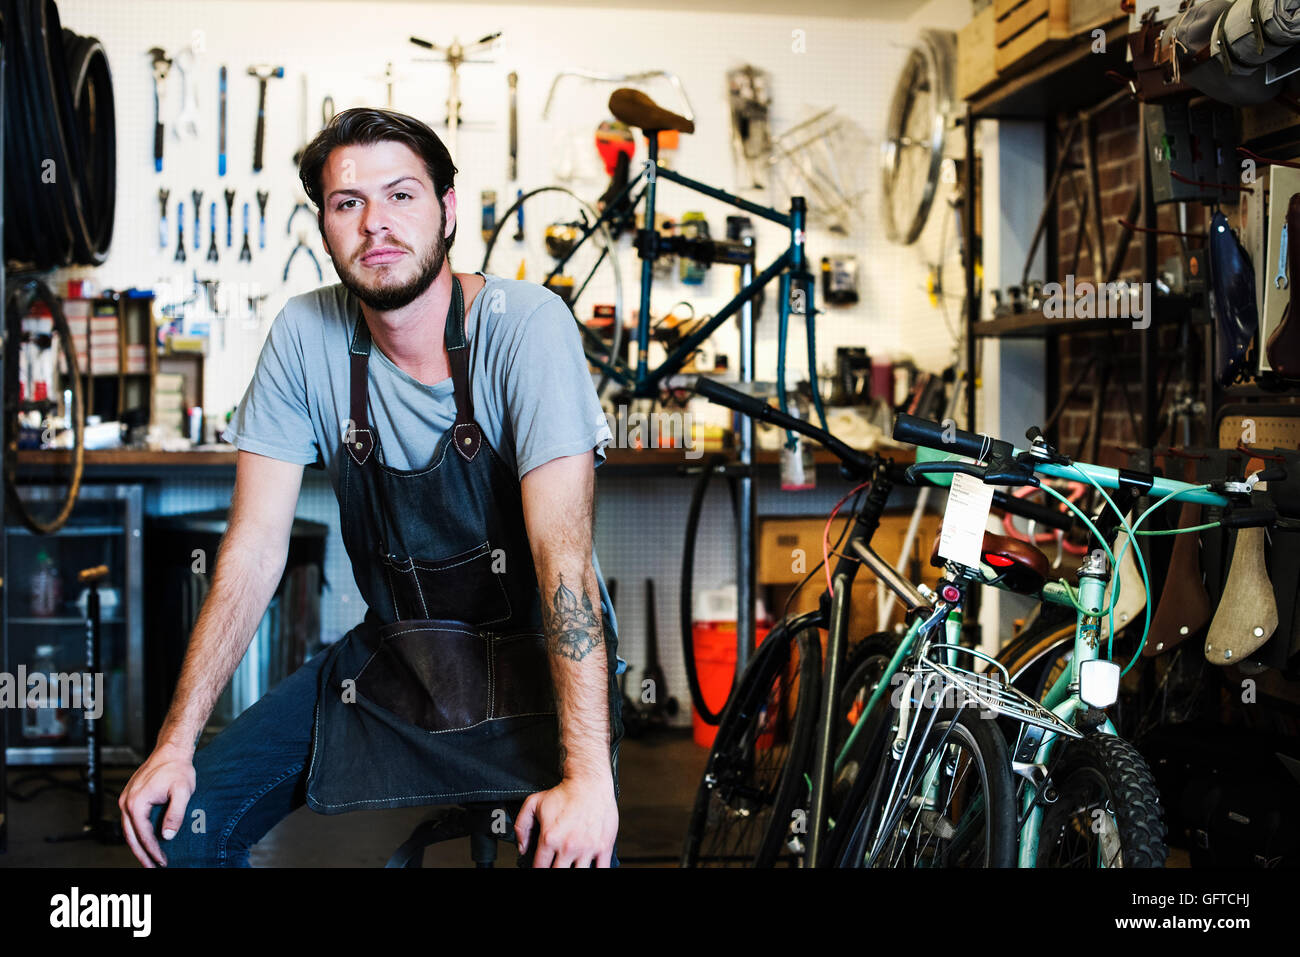 A man working in a bicycle repair shop Stock Photo